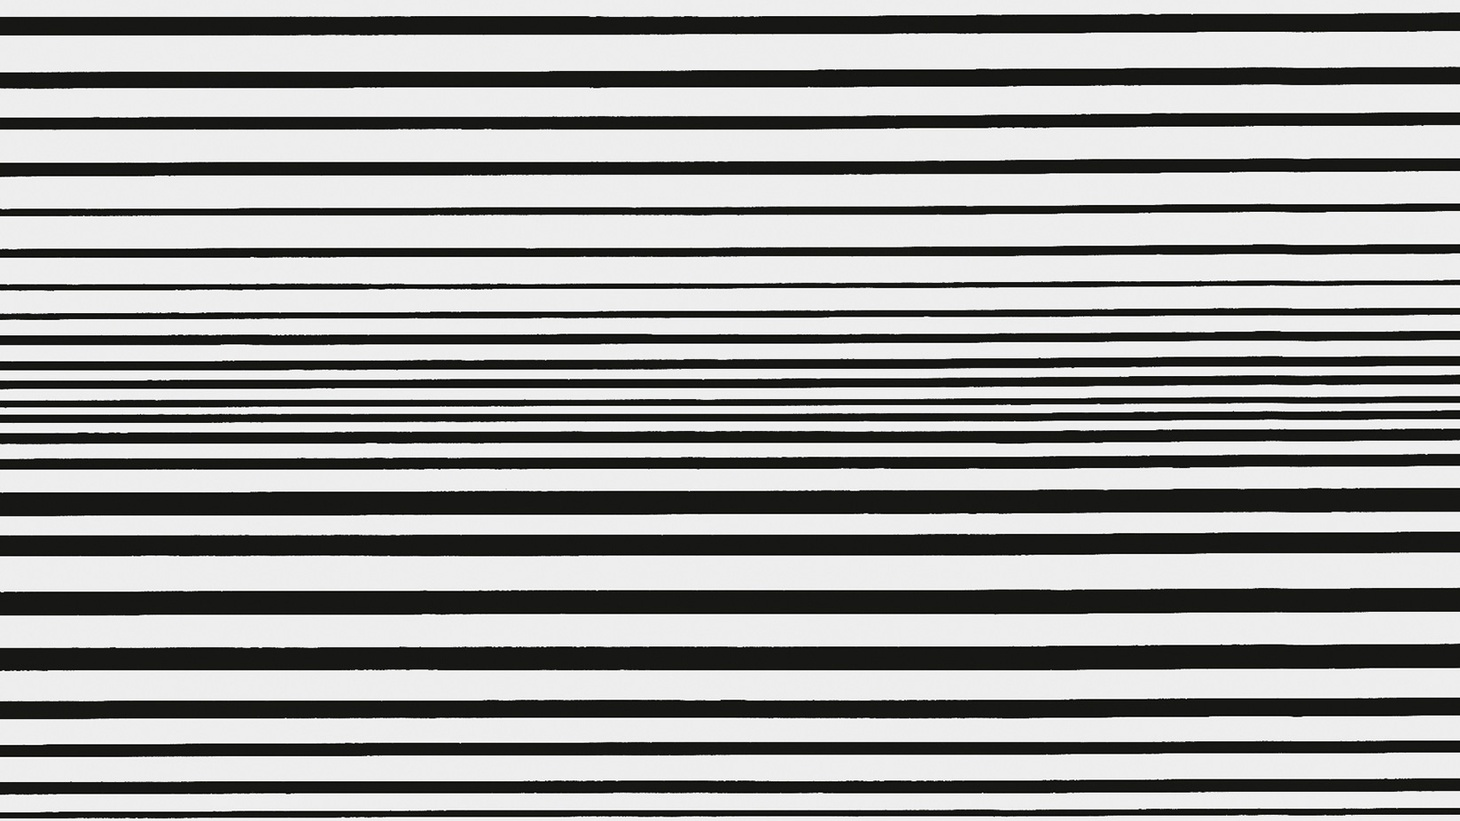 """A catchy name gives traction to an art movement: Abstraction Expressionism (AbX), Pop Art, or Op Art, short for """"optical art One of the artists most associated with the latter was the English painter Bridget Riley, born in 1931, who was catapulted…"""